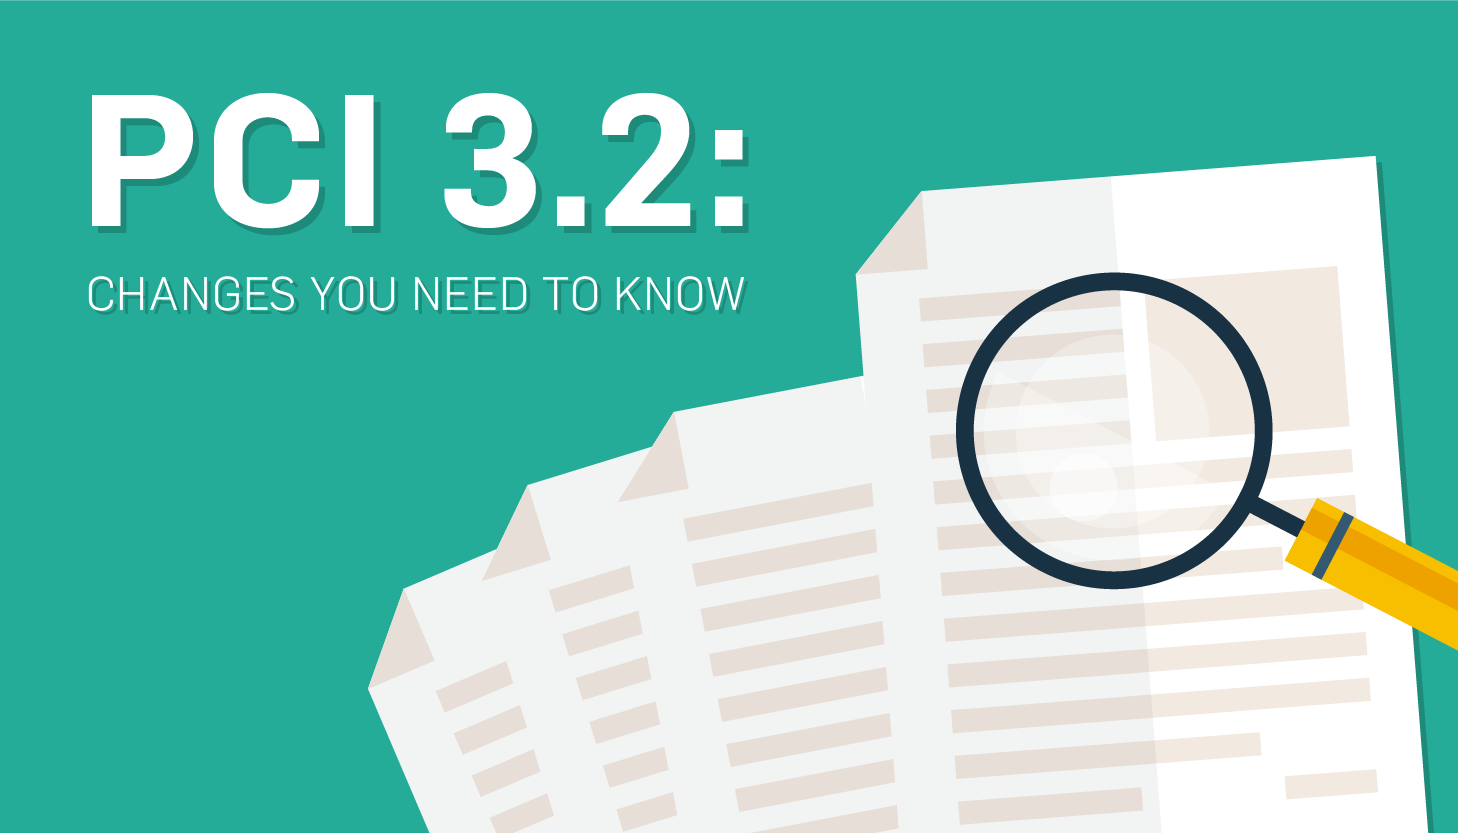 PCI DSS 3.2 Changes: What Your Business Needs to Know